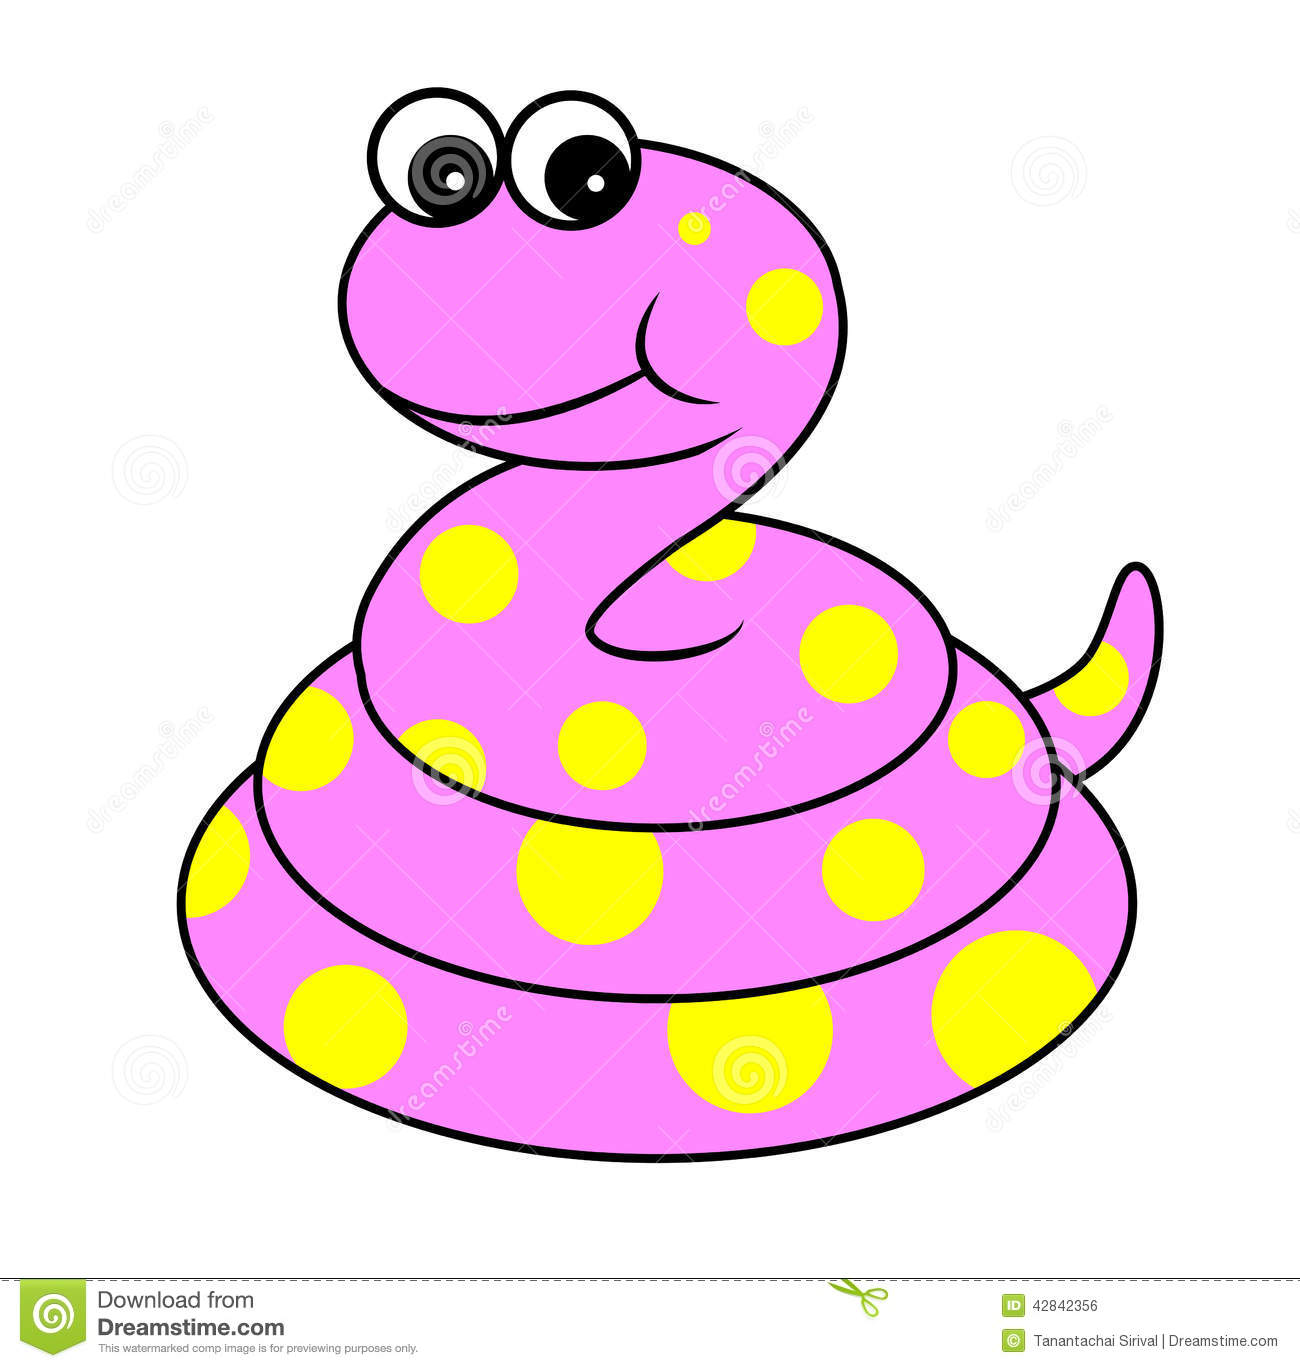 Snake Cartoon Illustration Of Cute Pink